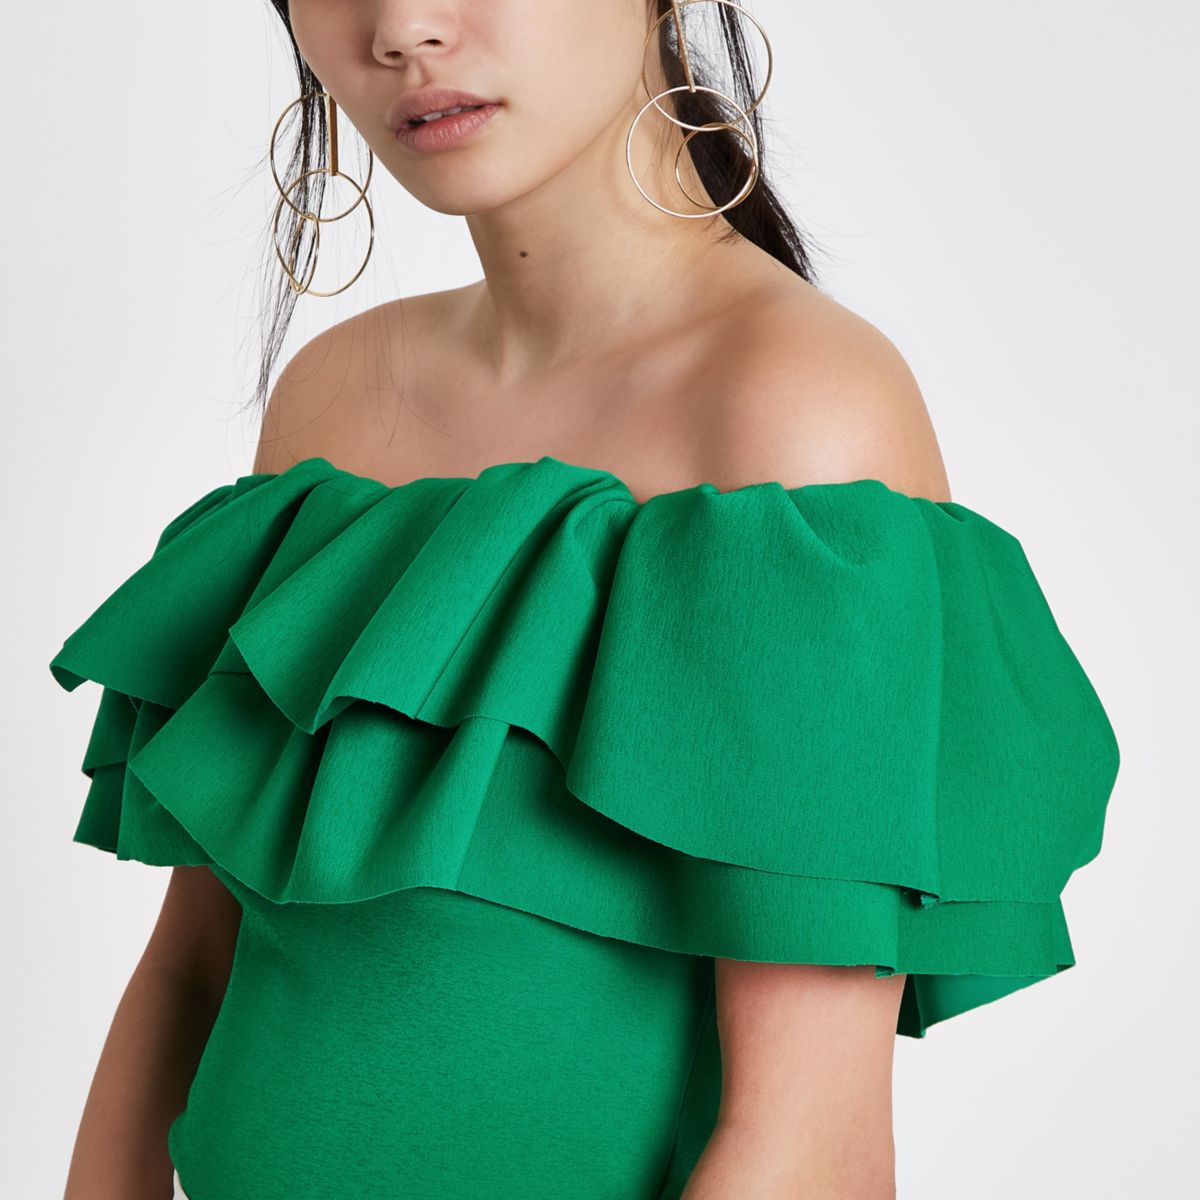 Green Frill Bardot Fitted Crop Top                                  Green Frill Bardot Fitted Crop Top by River Island